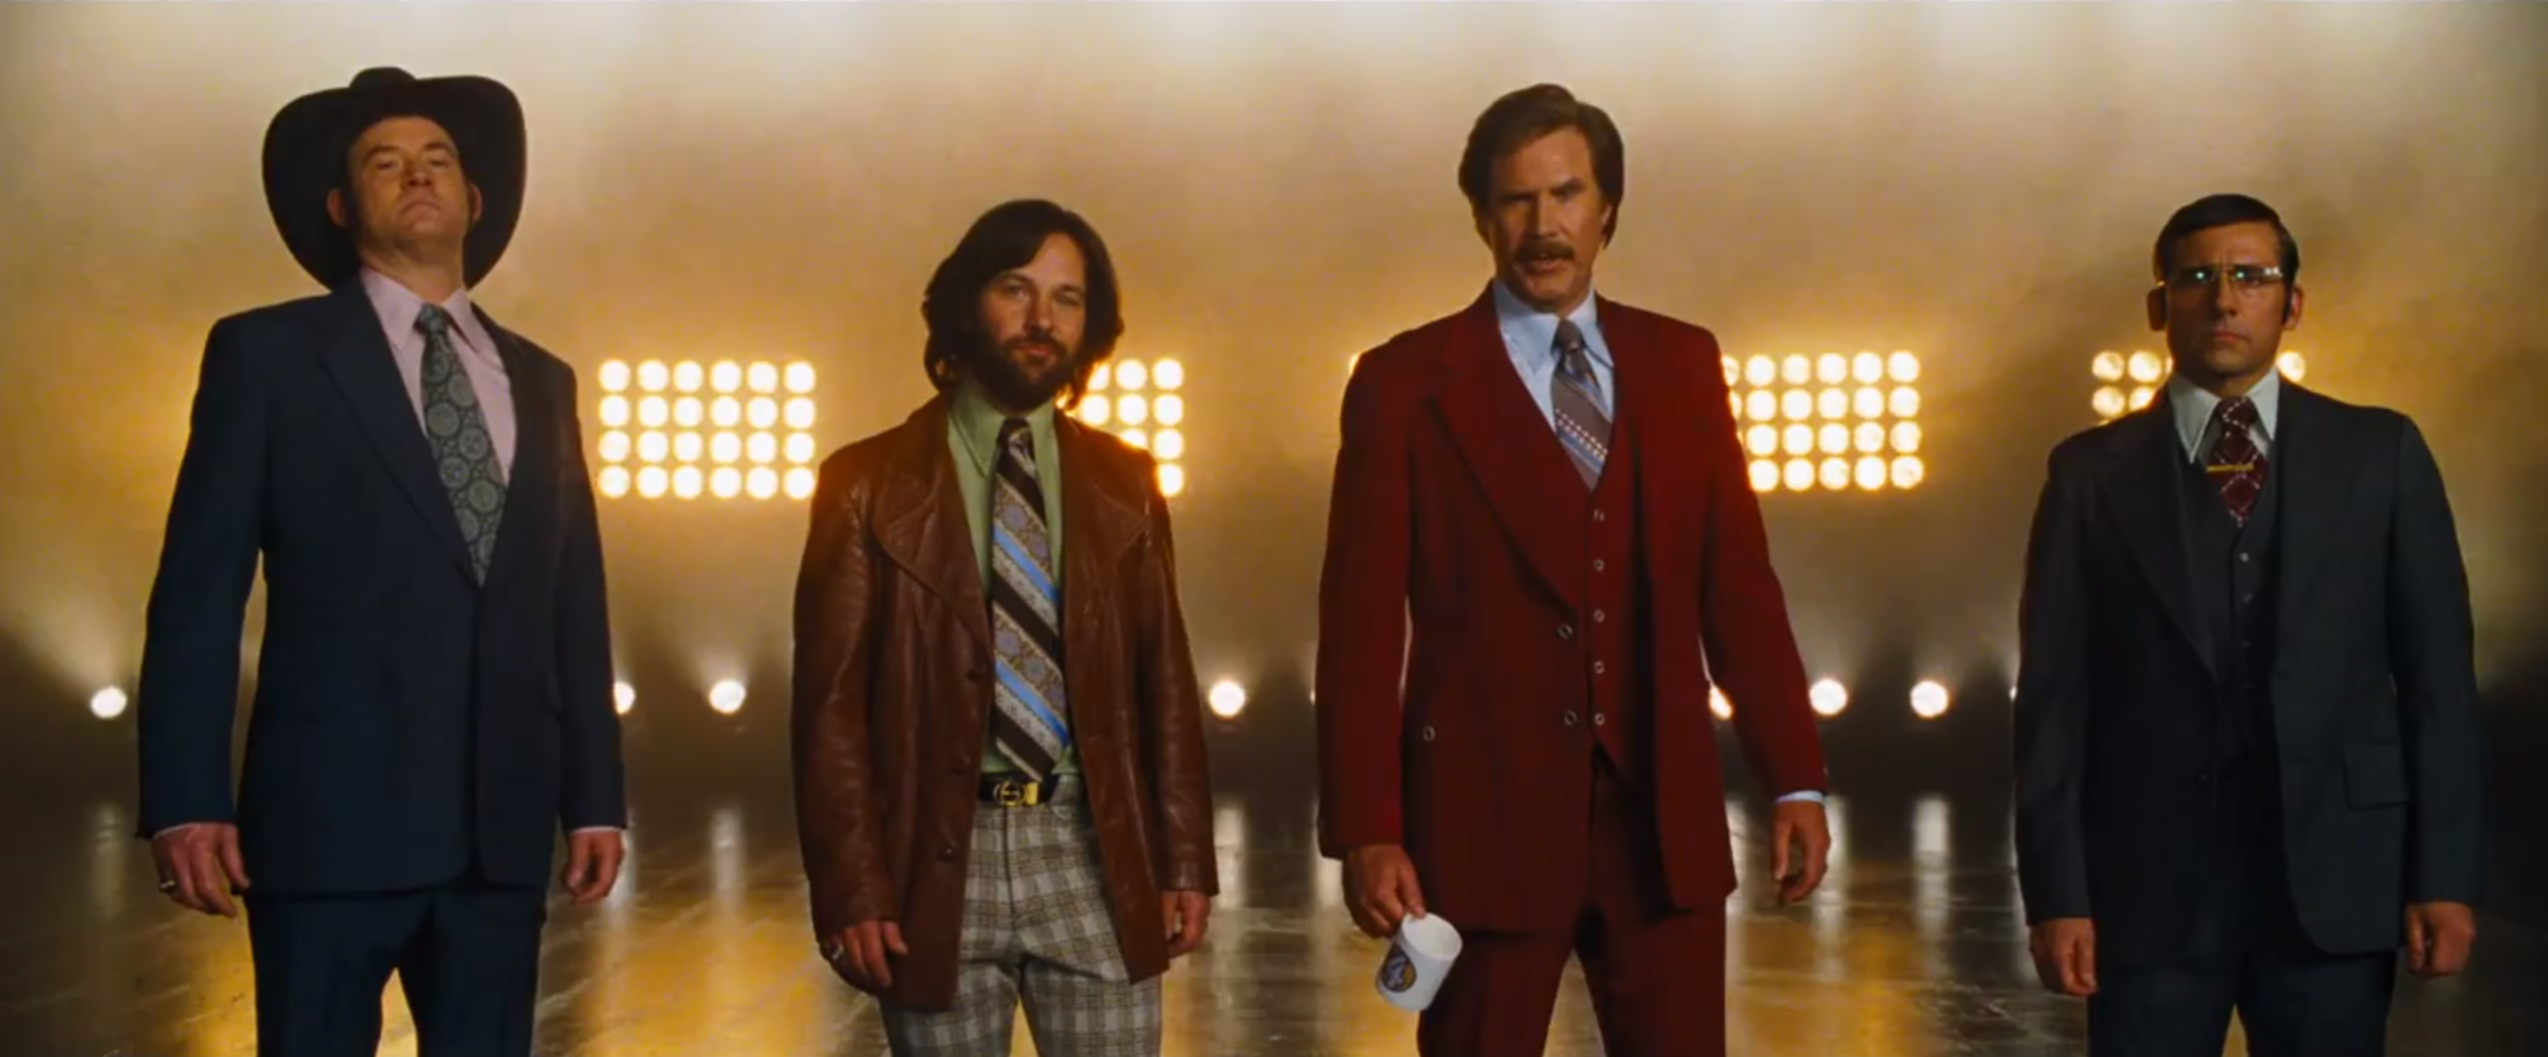 anchorman-2-news-team-assemble